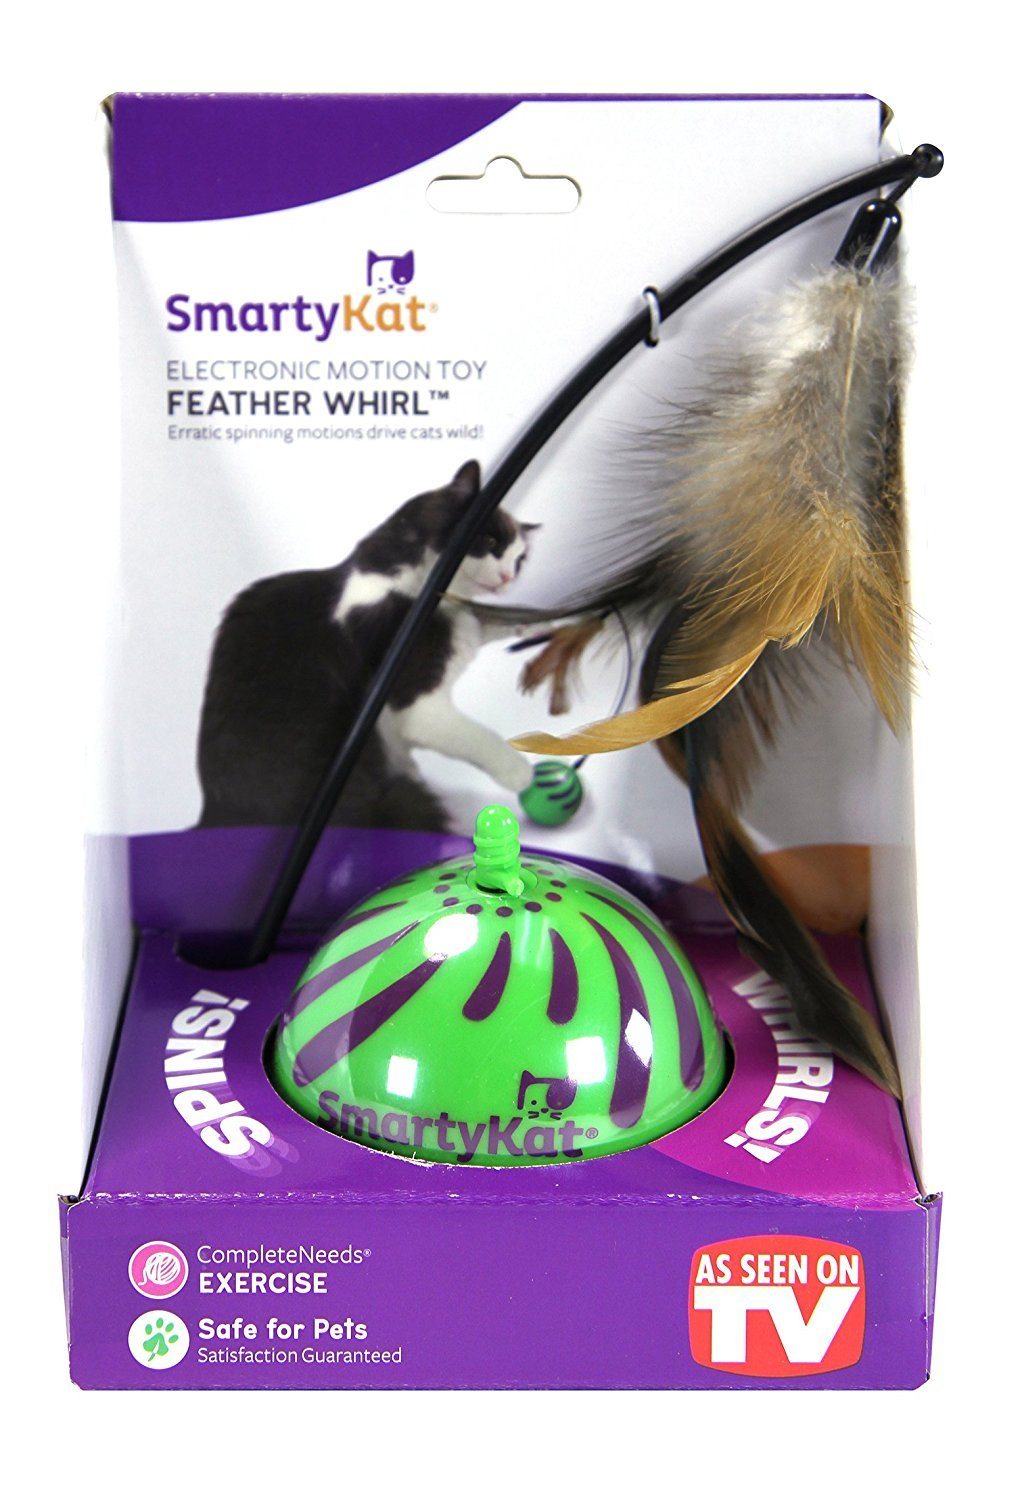 SmartyKat Feather Whirl Electronic Motion Cat Toy, As Seen On TV 2-Pack